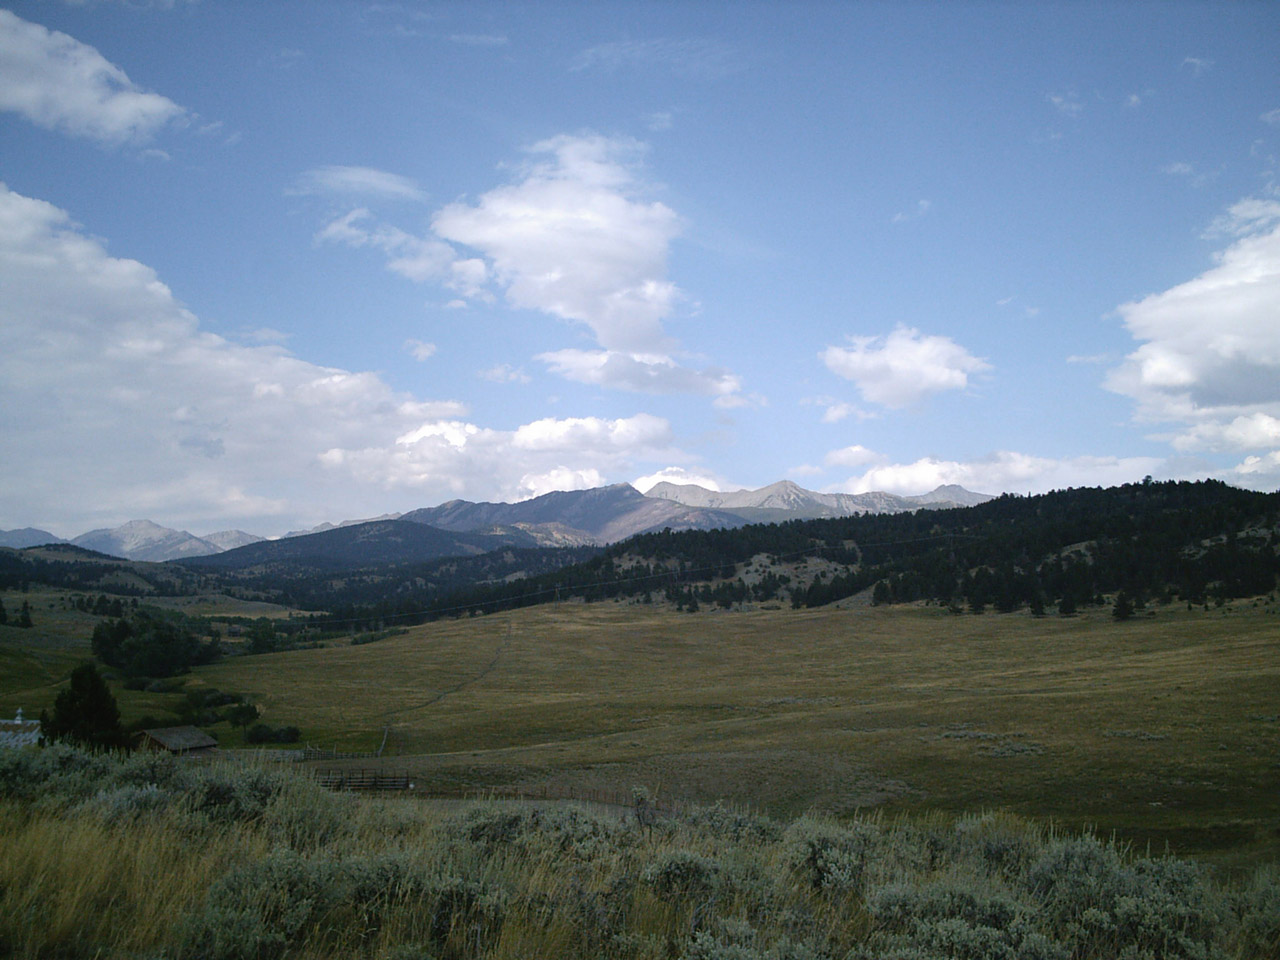 mountain ranch chat sites At 6701 east mountain ranch road in williams, az near grand canyon south rim is the mountain ranch resort at beacon hill rates from $250-$350.